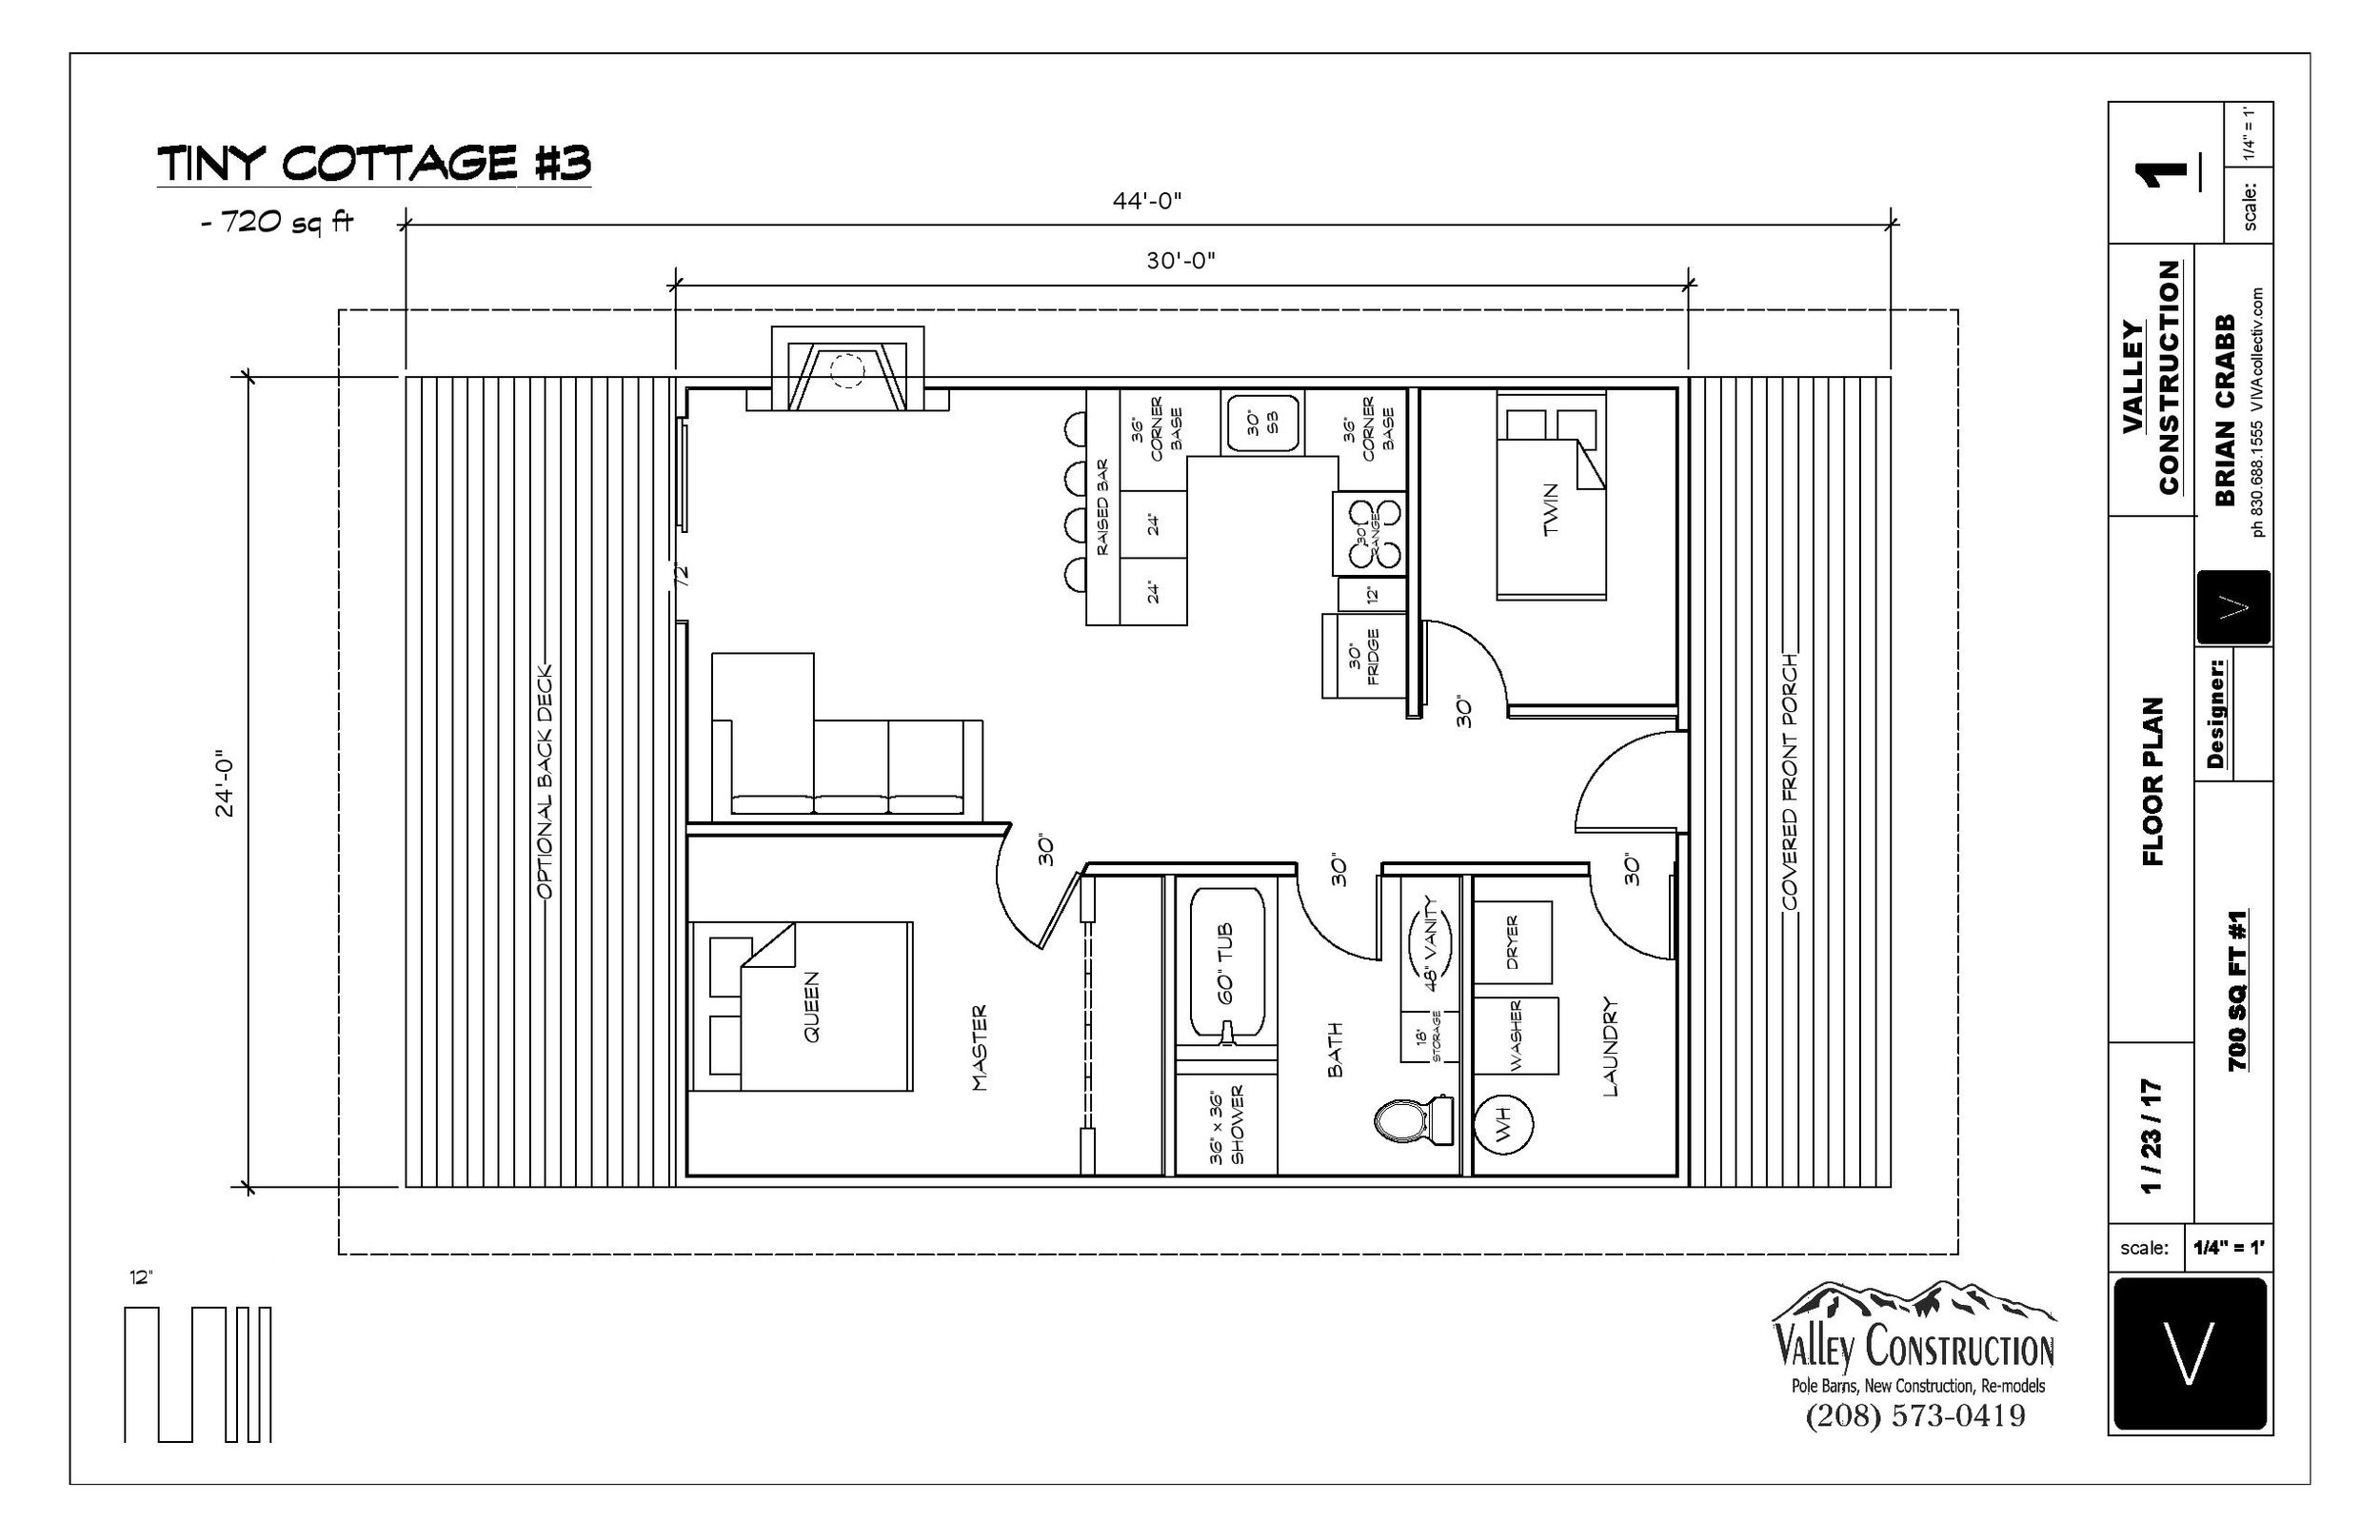 700 SQ FT #1 PACKET (1)-page-002.jpg